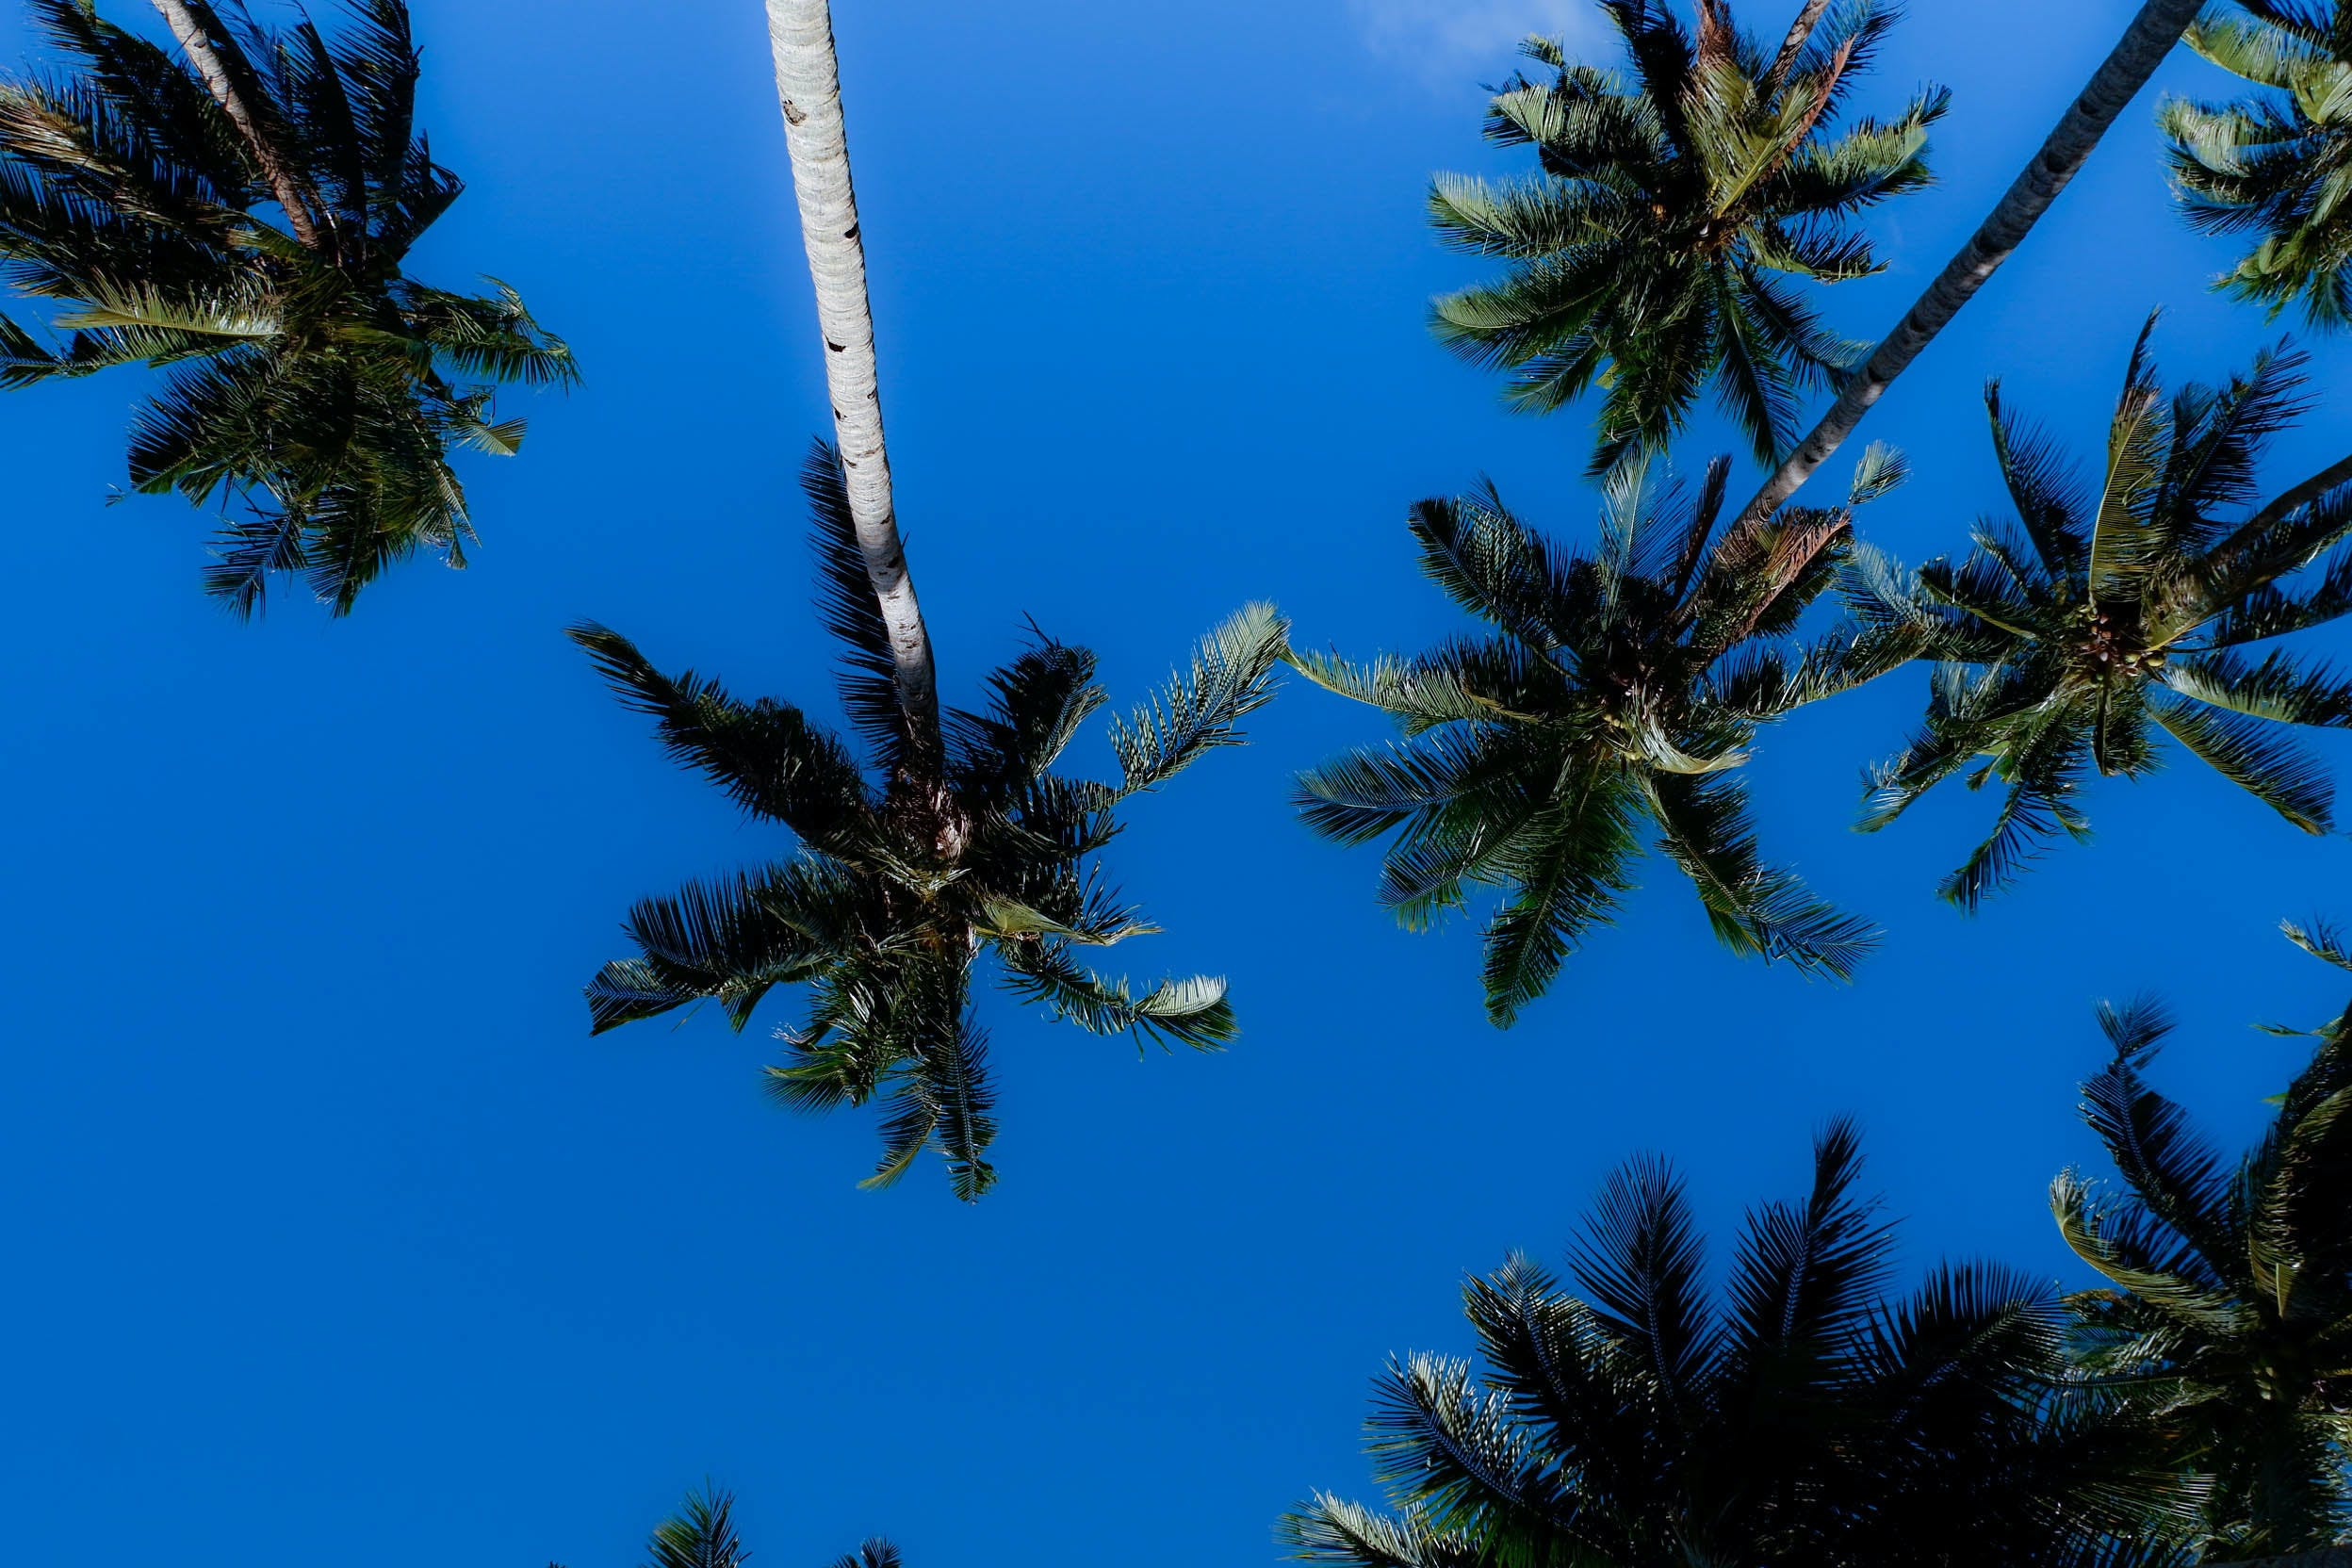 Free stock photo of blue sky, coconut trees, dark green plants